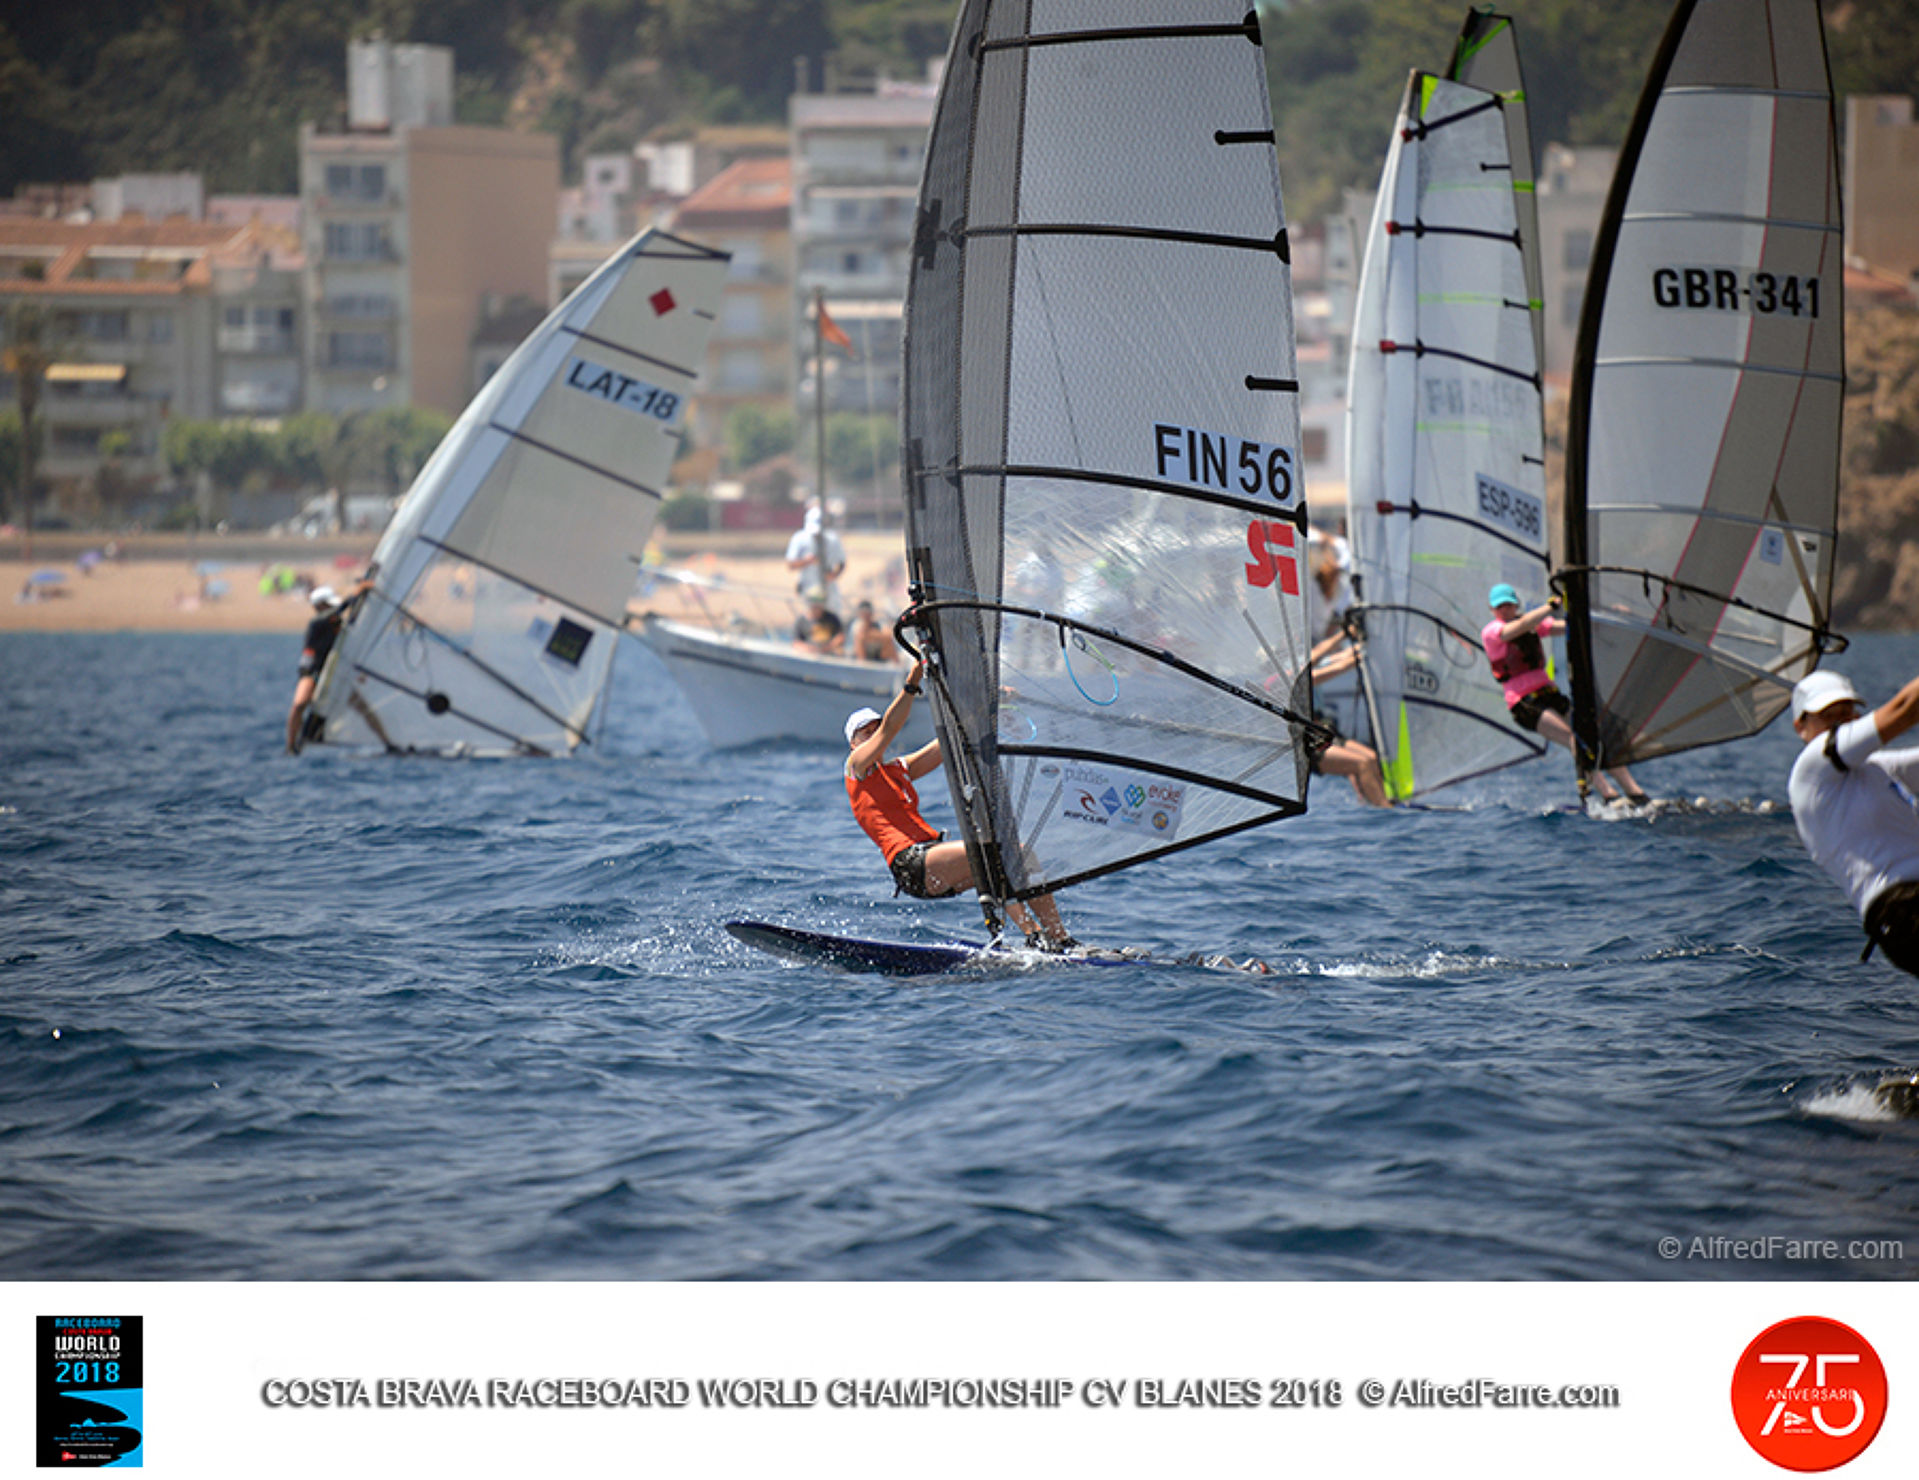 Aleksandra Blinnikka intractable al Mundial de Blanes.